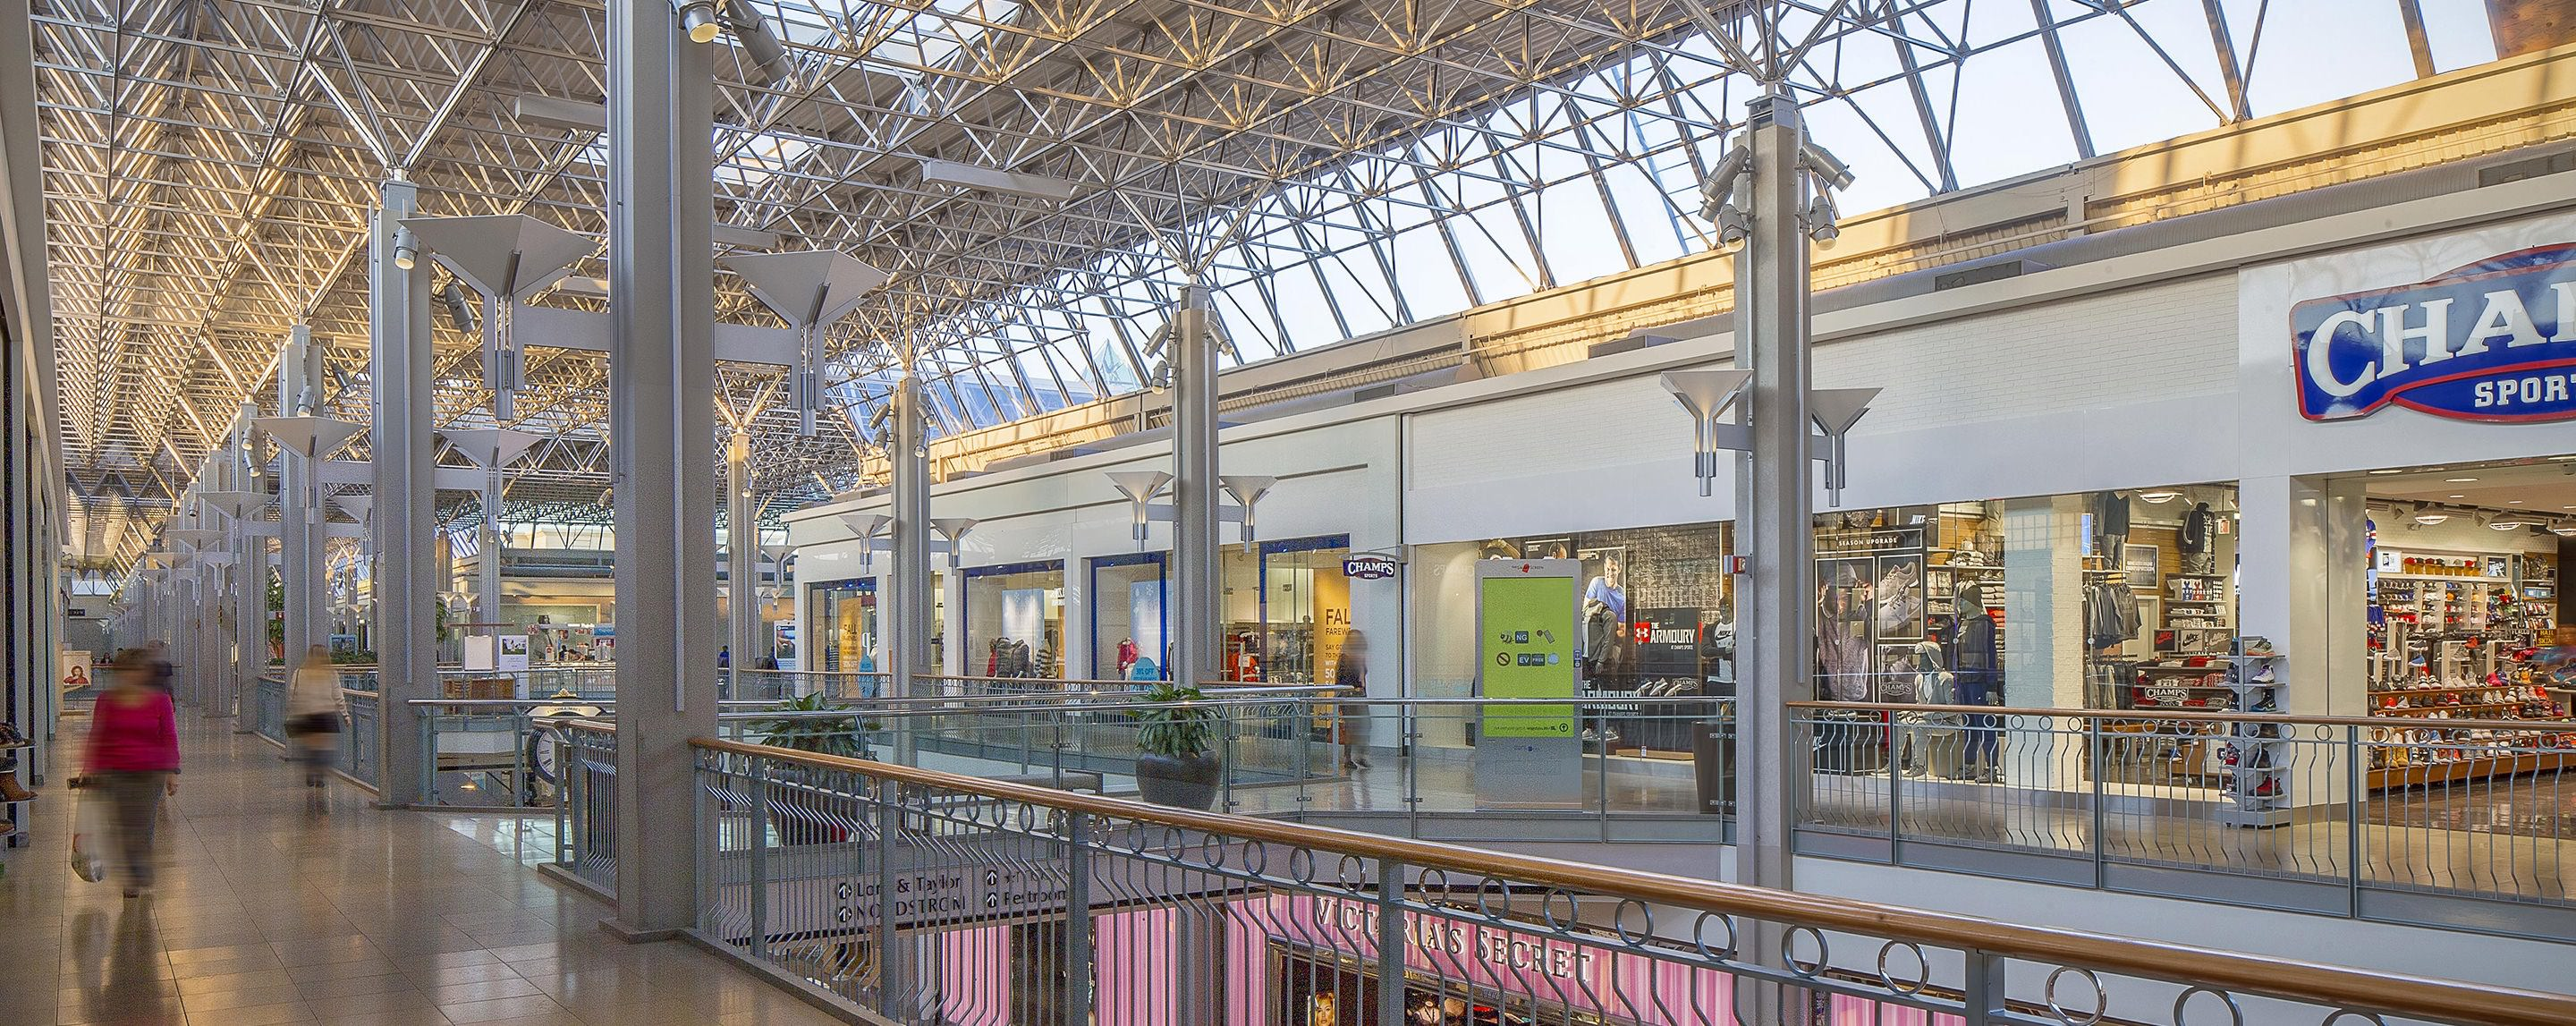 People walk on the second floor of an indoor shopping center and pass by stores such as Champs.